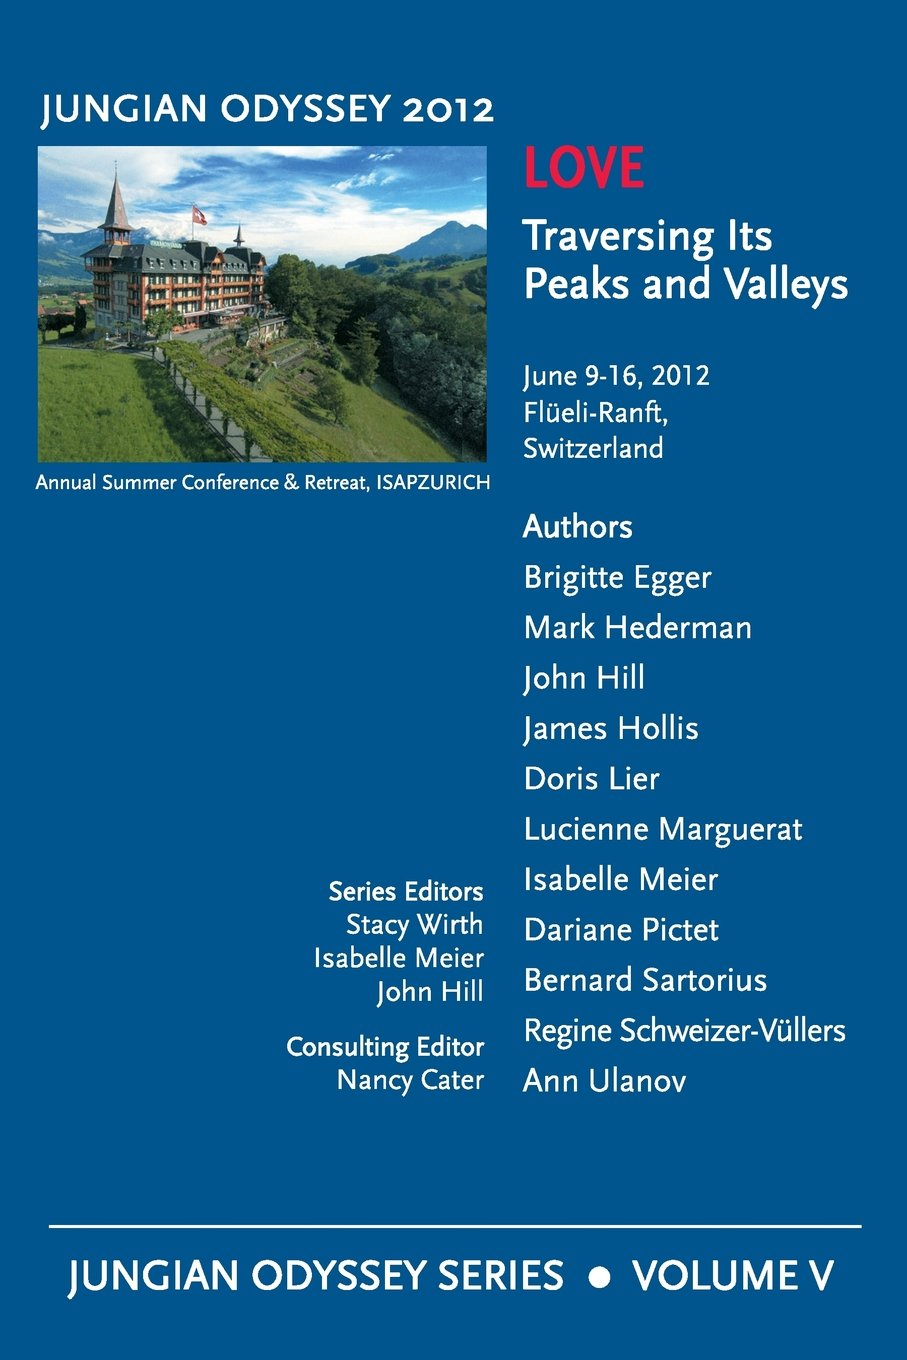 Download Jungian Odyssey Series, Vol. V. 2012, Love: Traversing Its Peaks and Valleys ebook